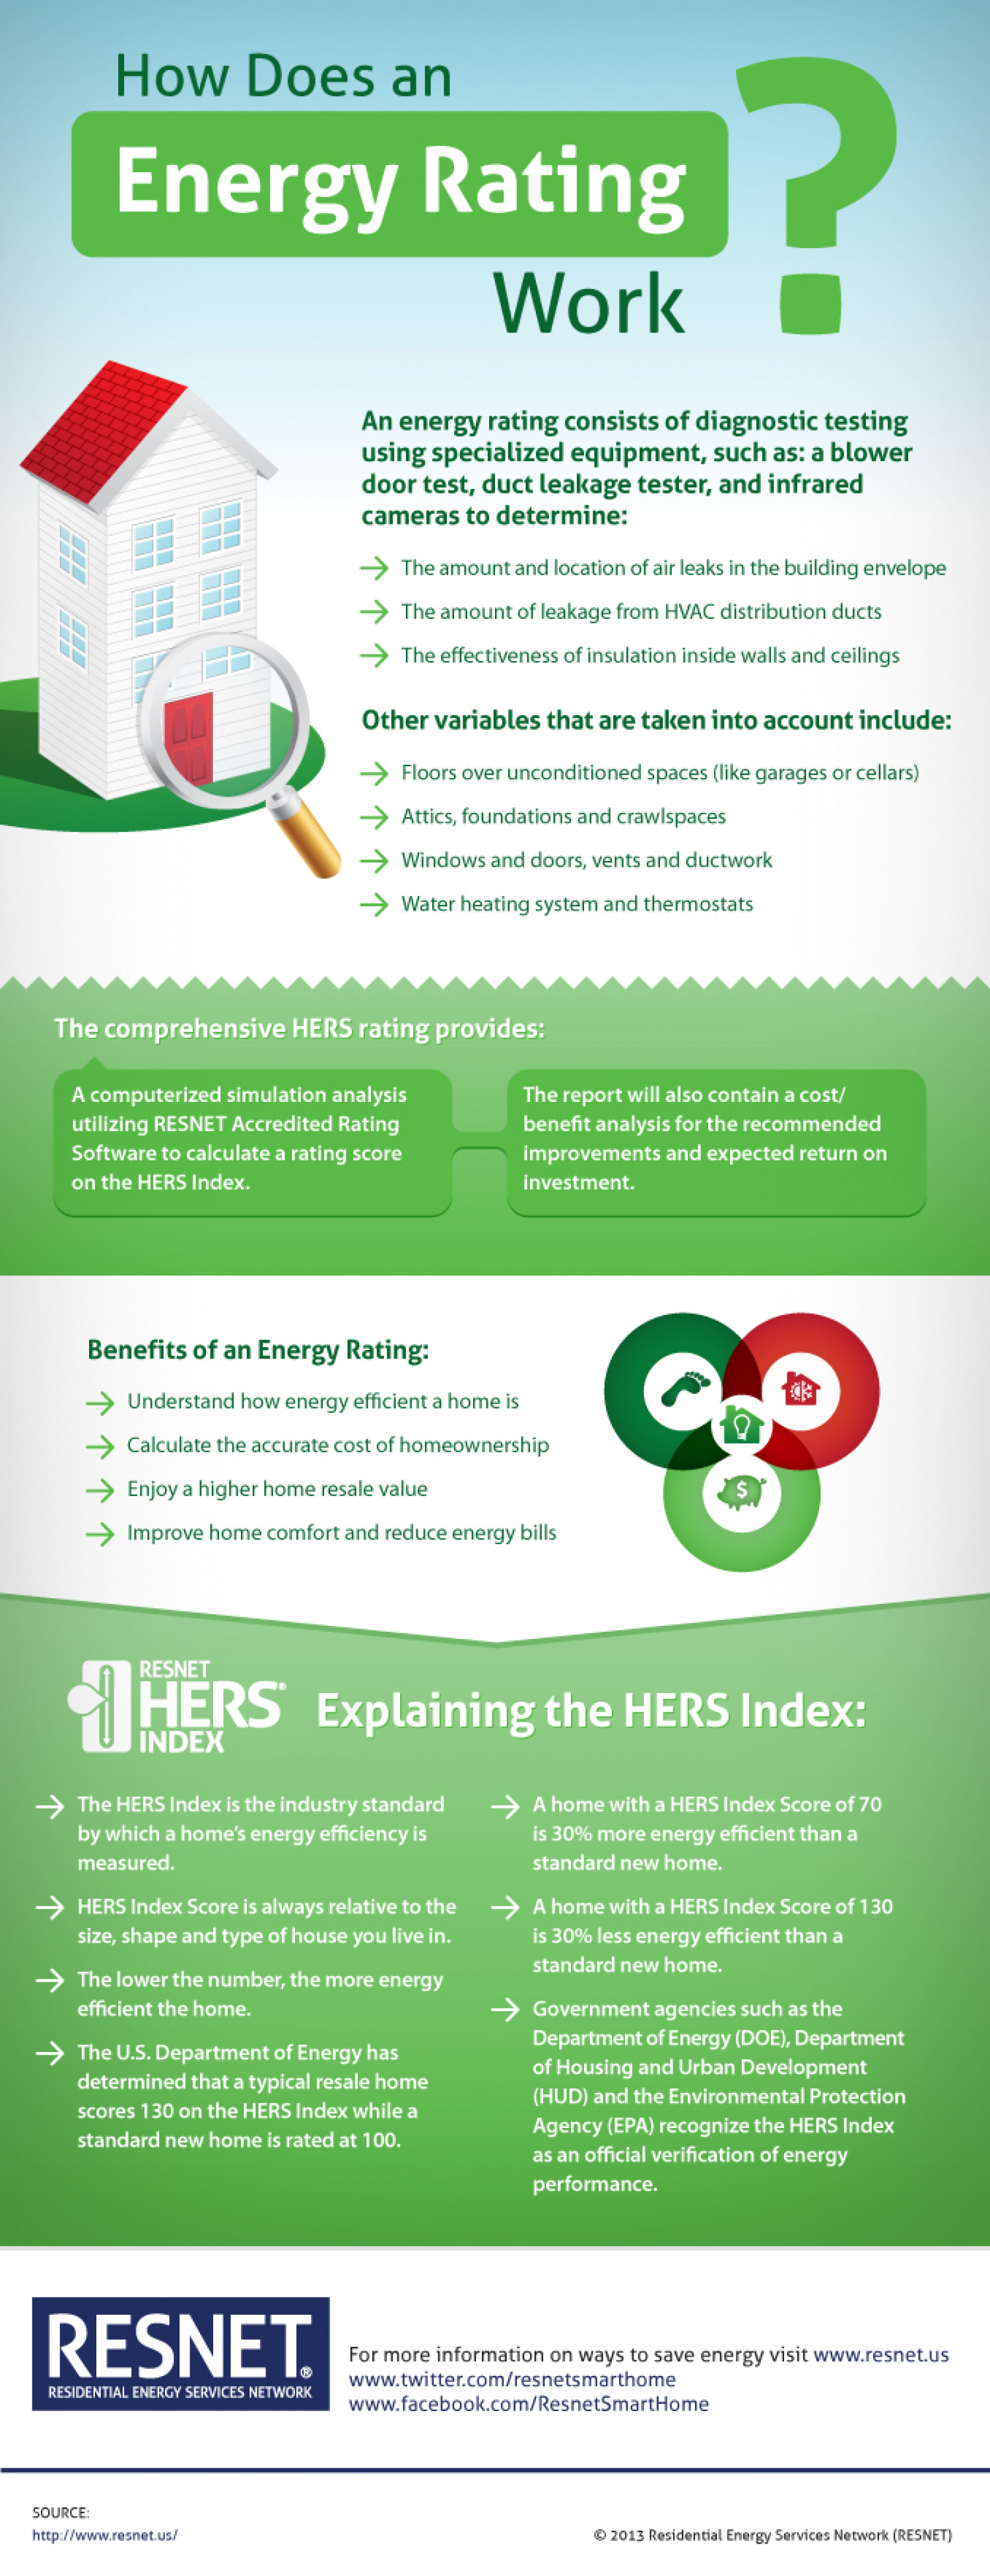 How Does an Energy Rating Work? Infographic